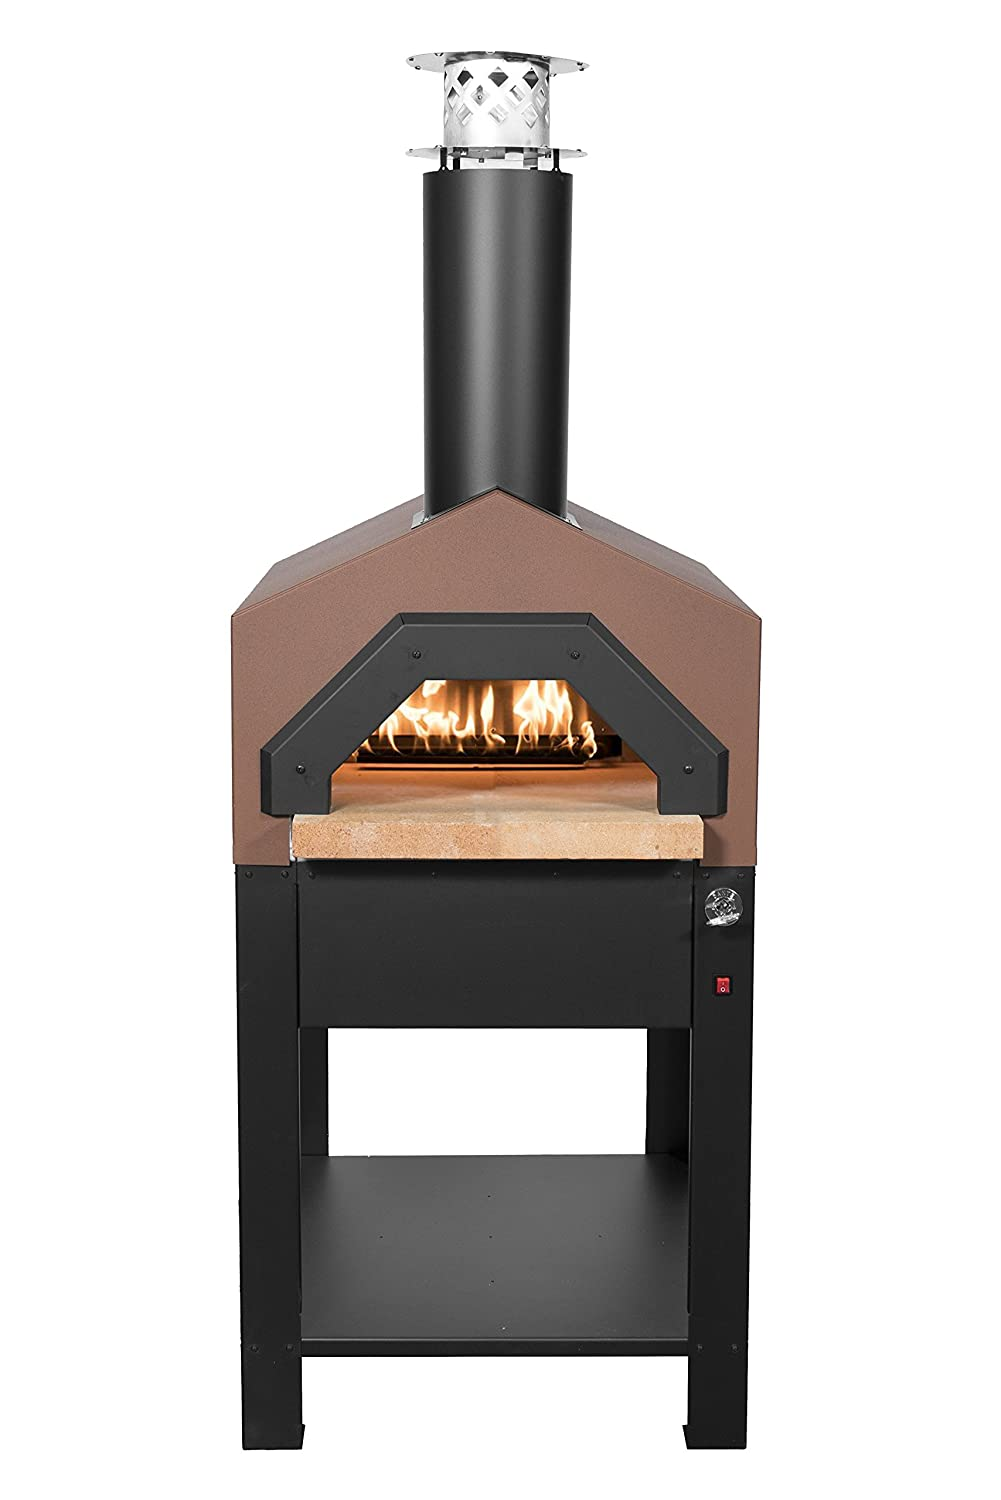 Chicago Brick Oven Americano Wood-Fired Outdoor Pizza Oven Hybrid, Stand (Propane Gas, Terra Cotta)